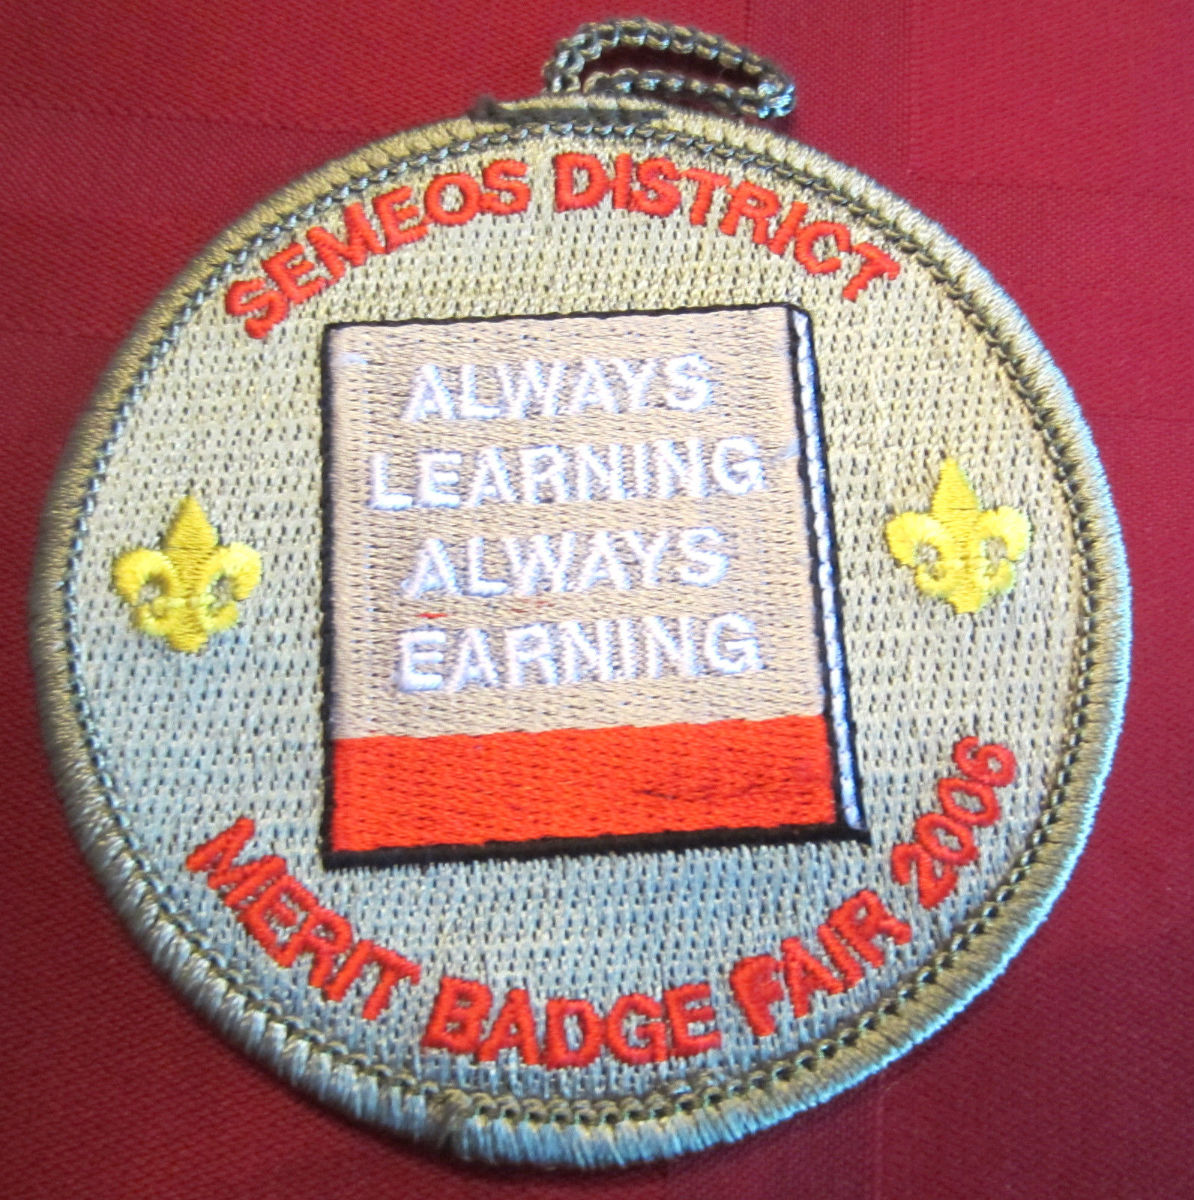 Bsa Boy Scout Uniform Patch Bsa Semeos Always Learning